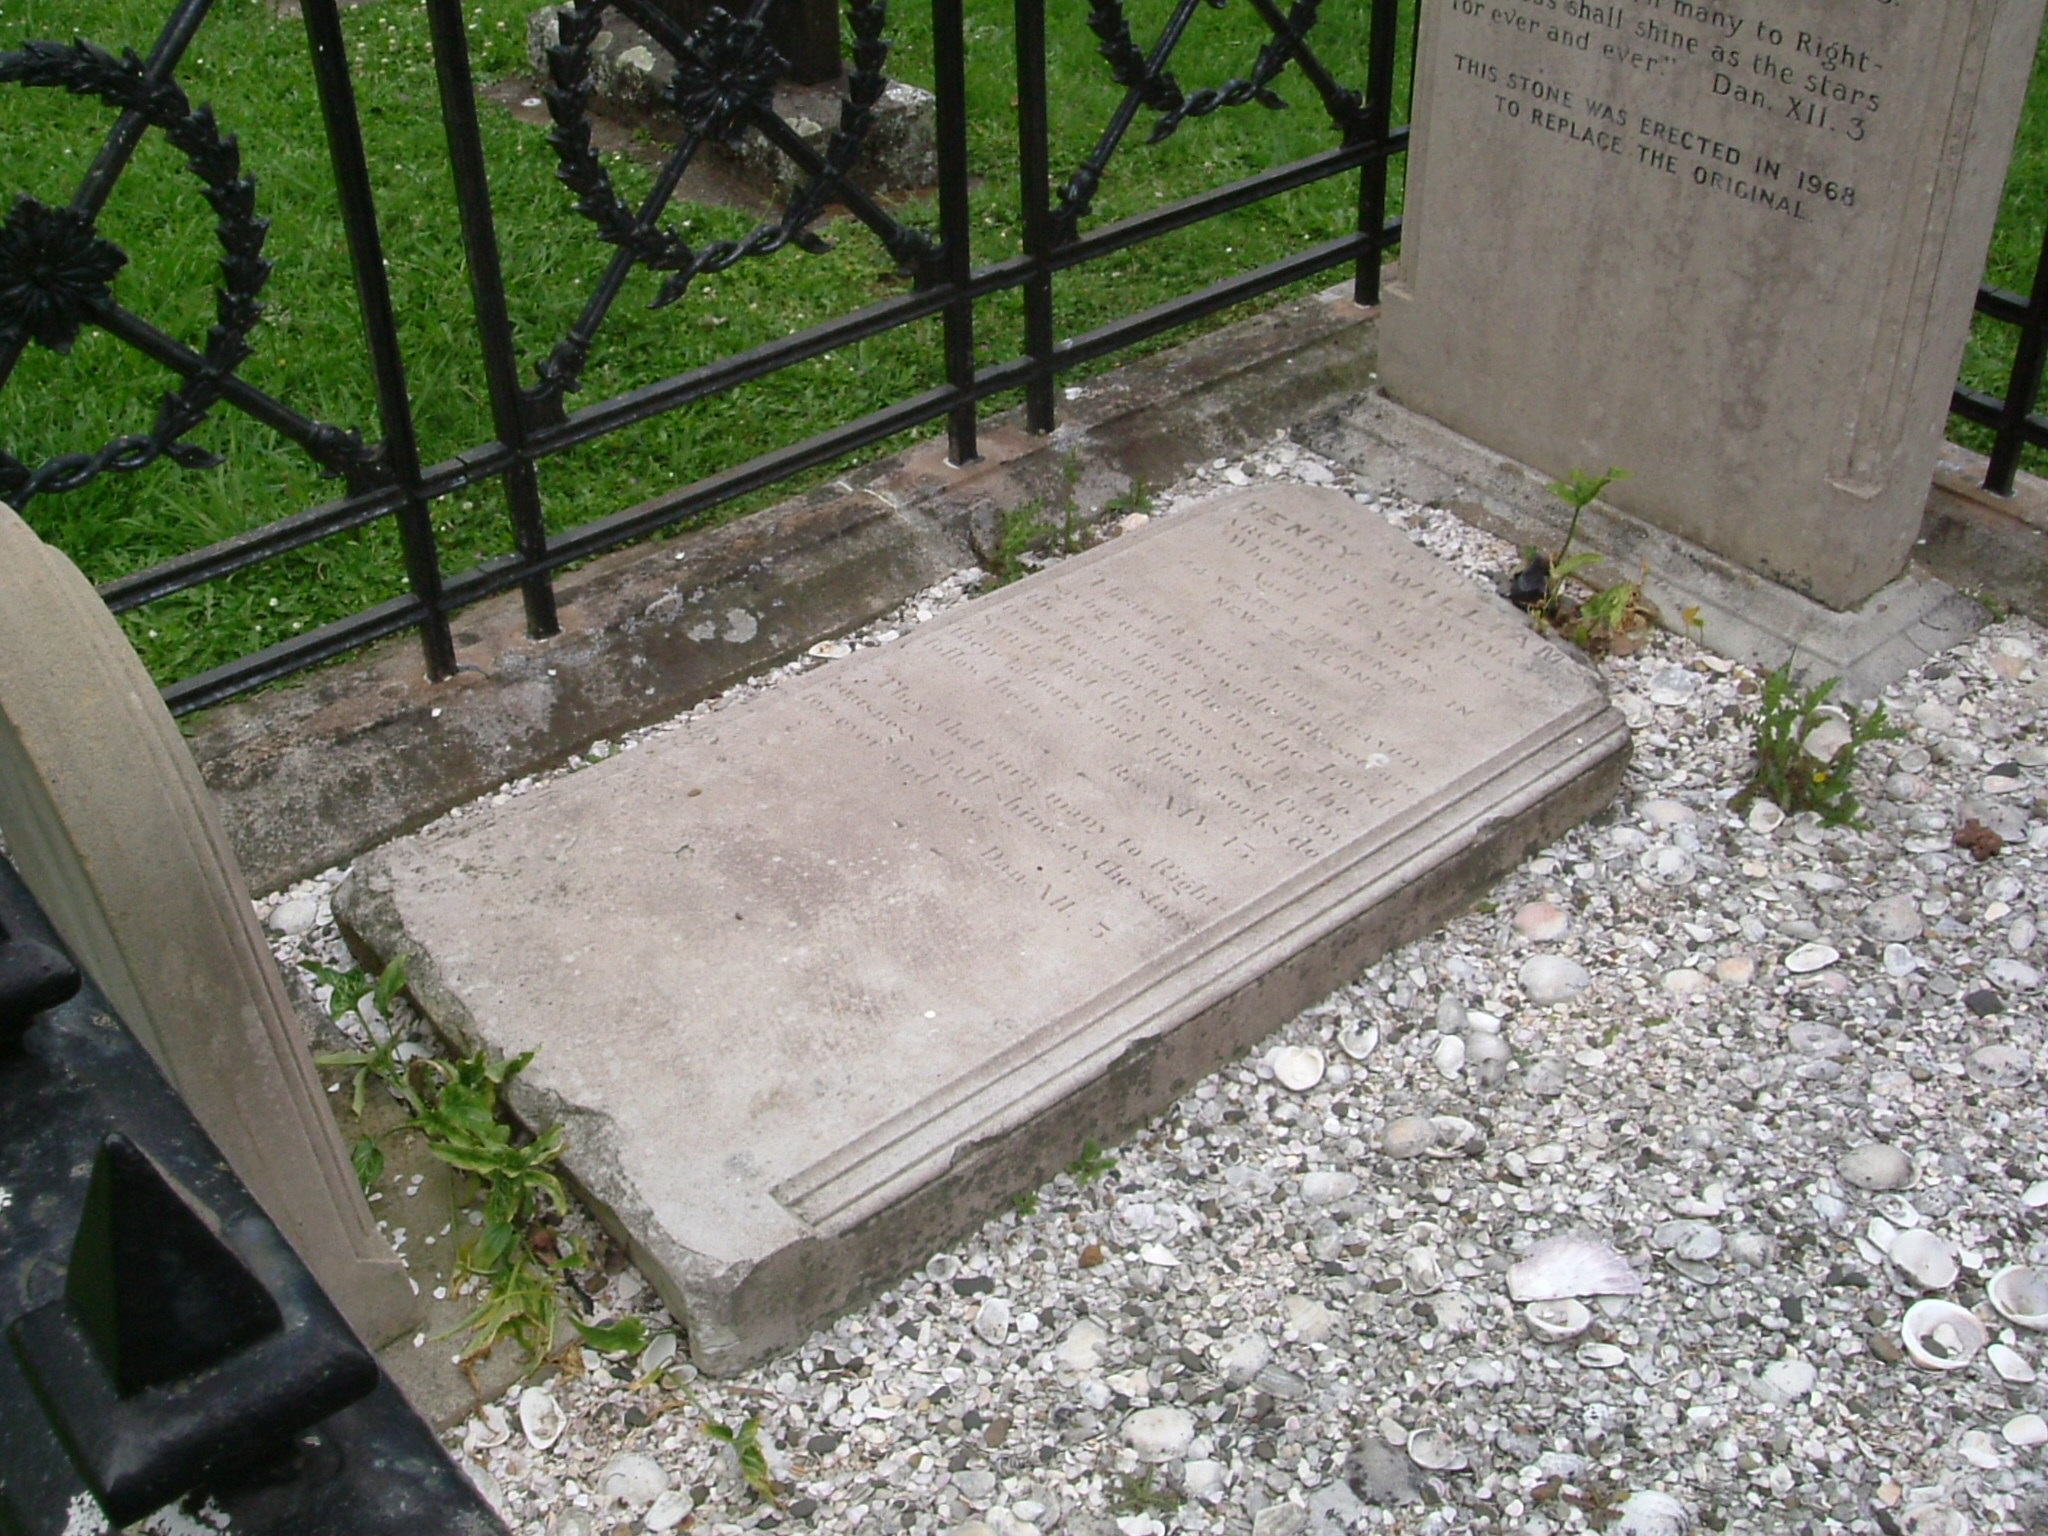 HENRY WILLIAMS' TOMBSTONE